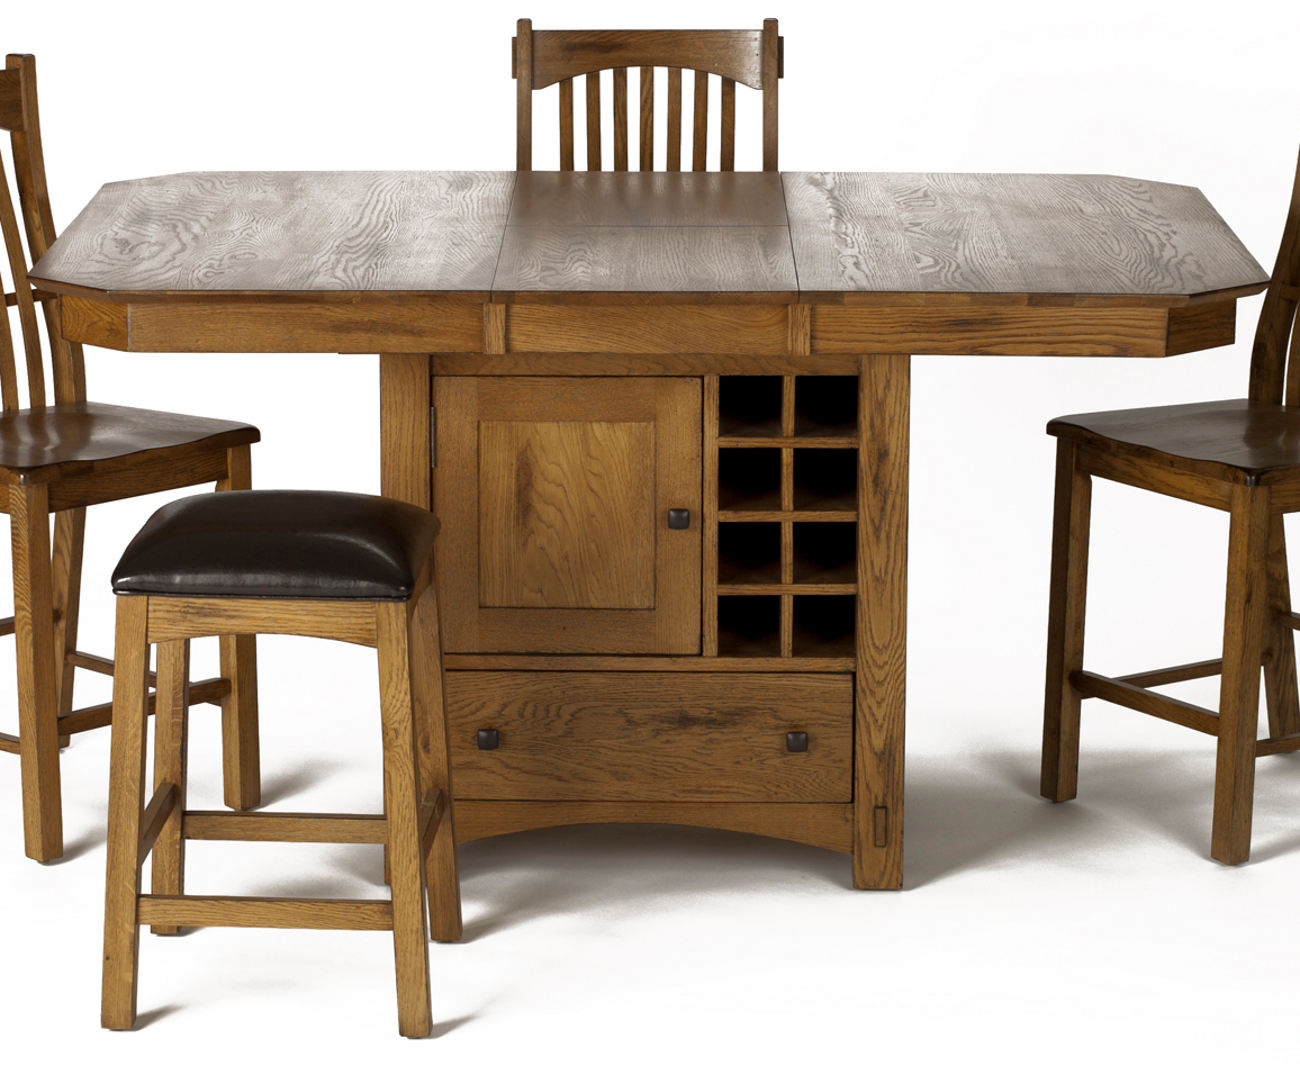 A America Laurelhurst Gather Height Dining Table W Wine Storage In Rustic Oak Lauro6770 Code